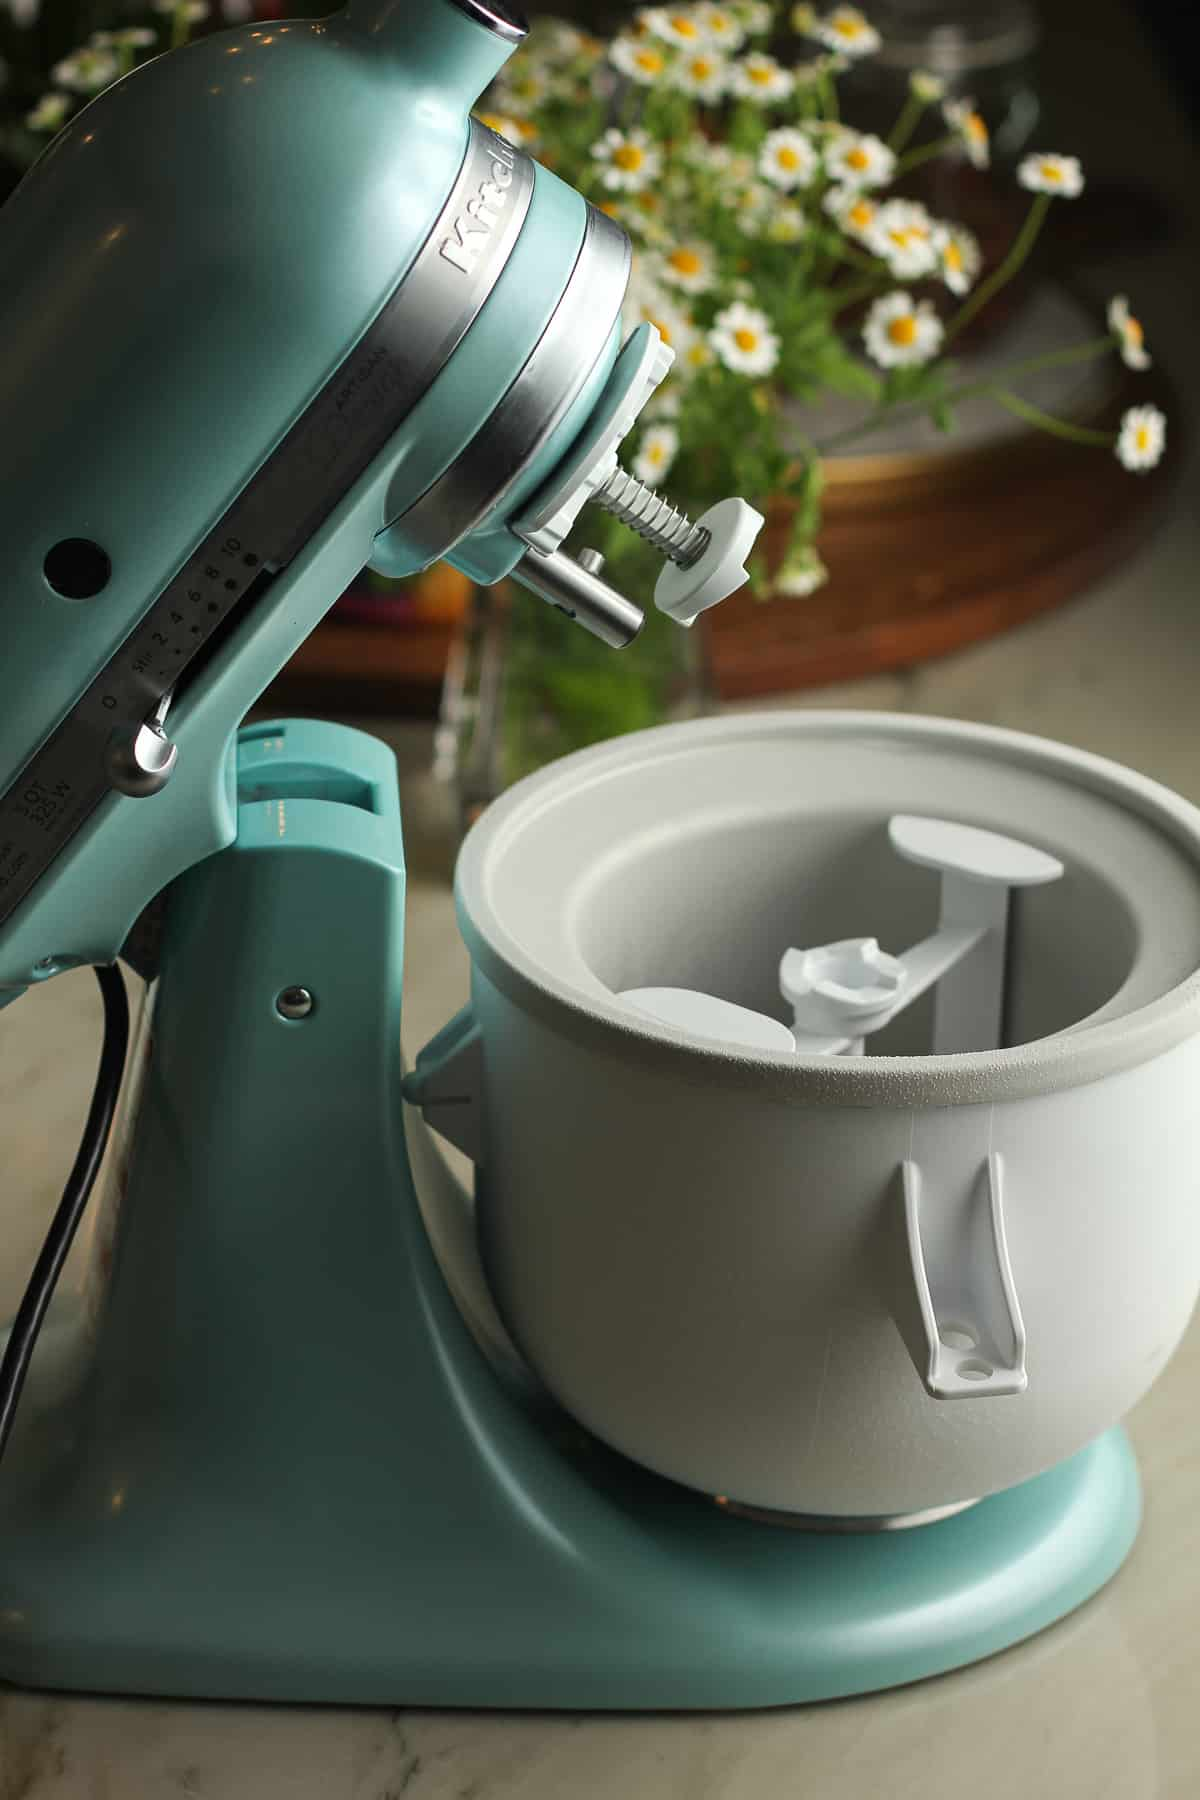 Side shot of a KitchenAid mixer with an ice cream attachment.